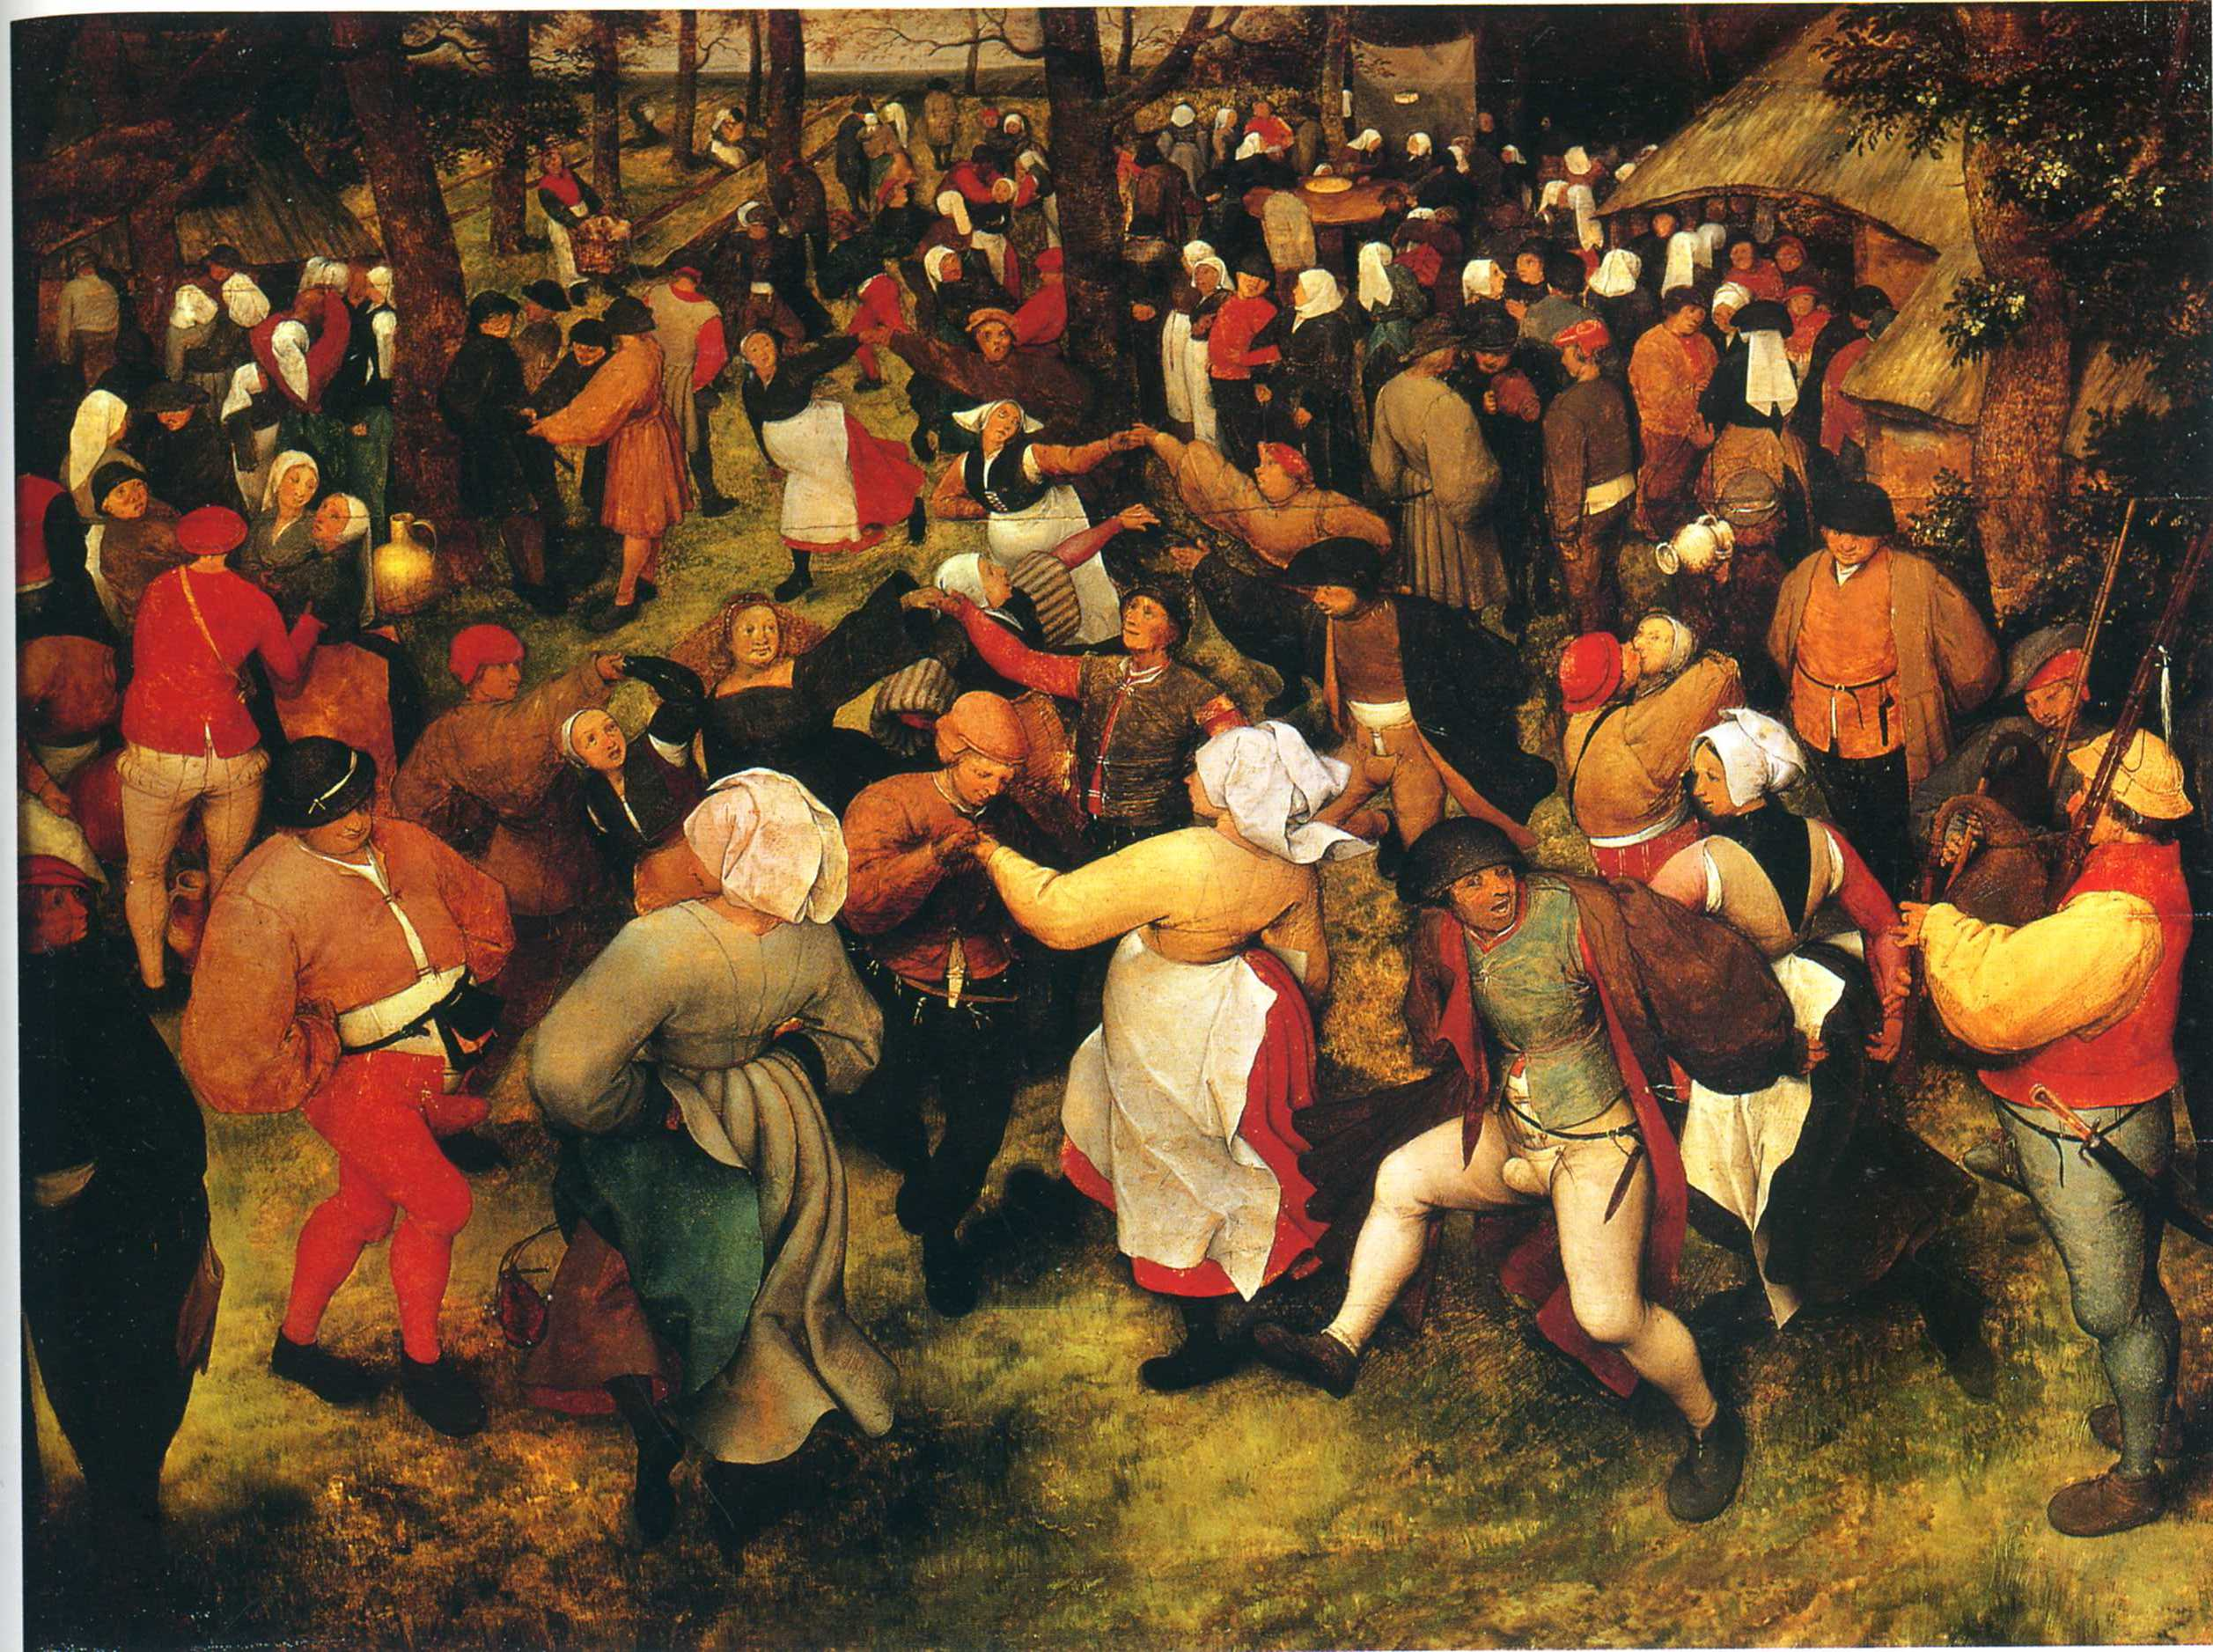 The Wedding Dance in the open air, 1566